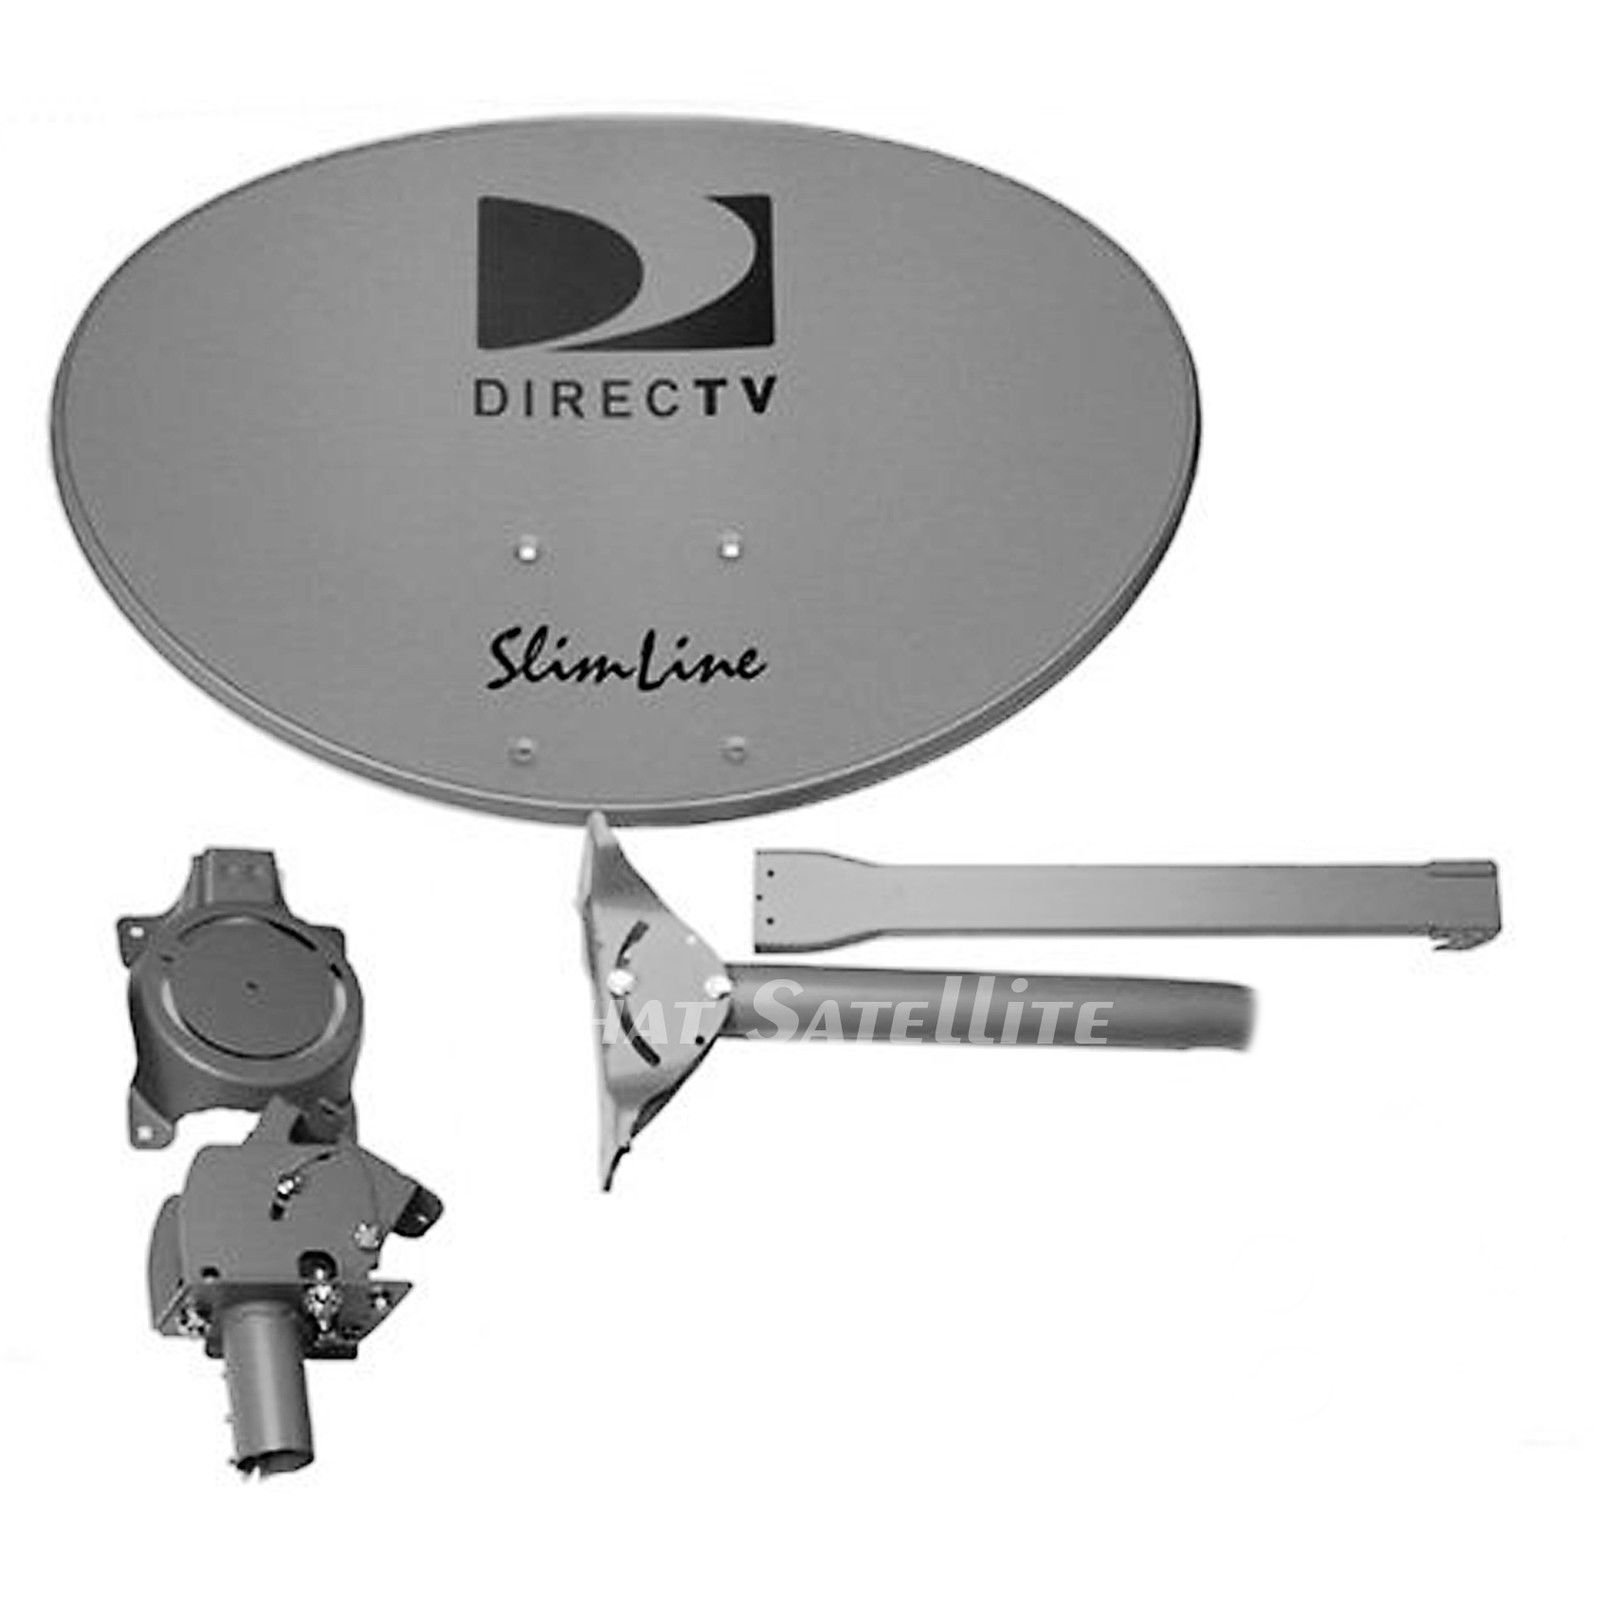 Dish, Mounts, No Lnb Dish Kit For Directv by Distributed By MCM